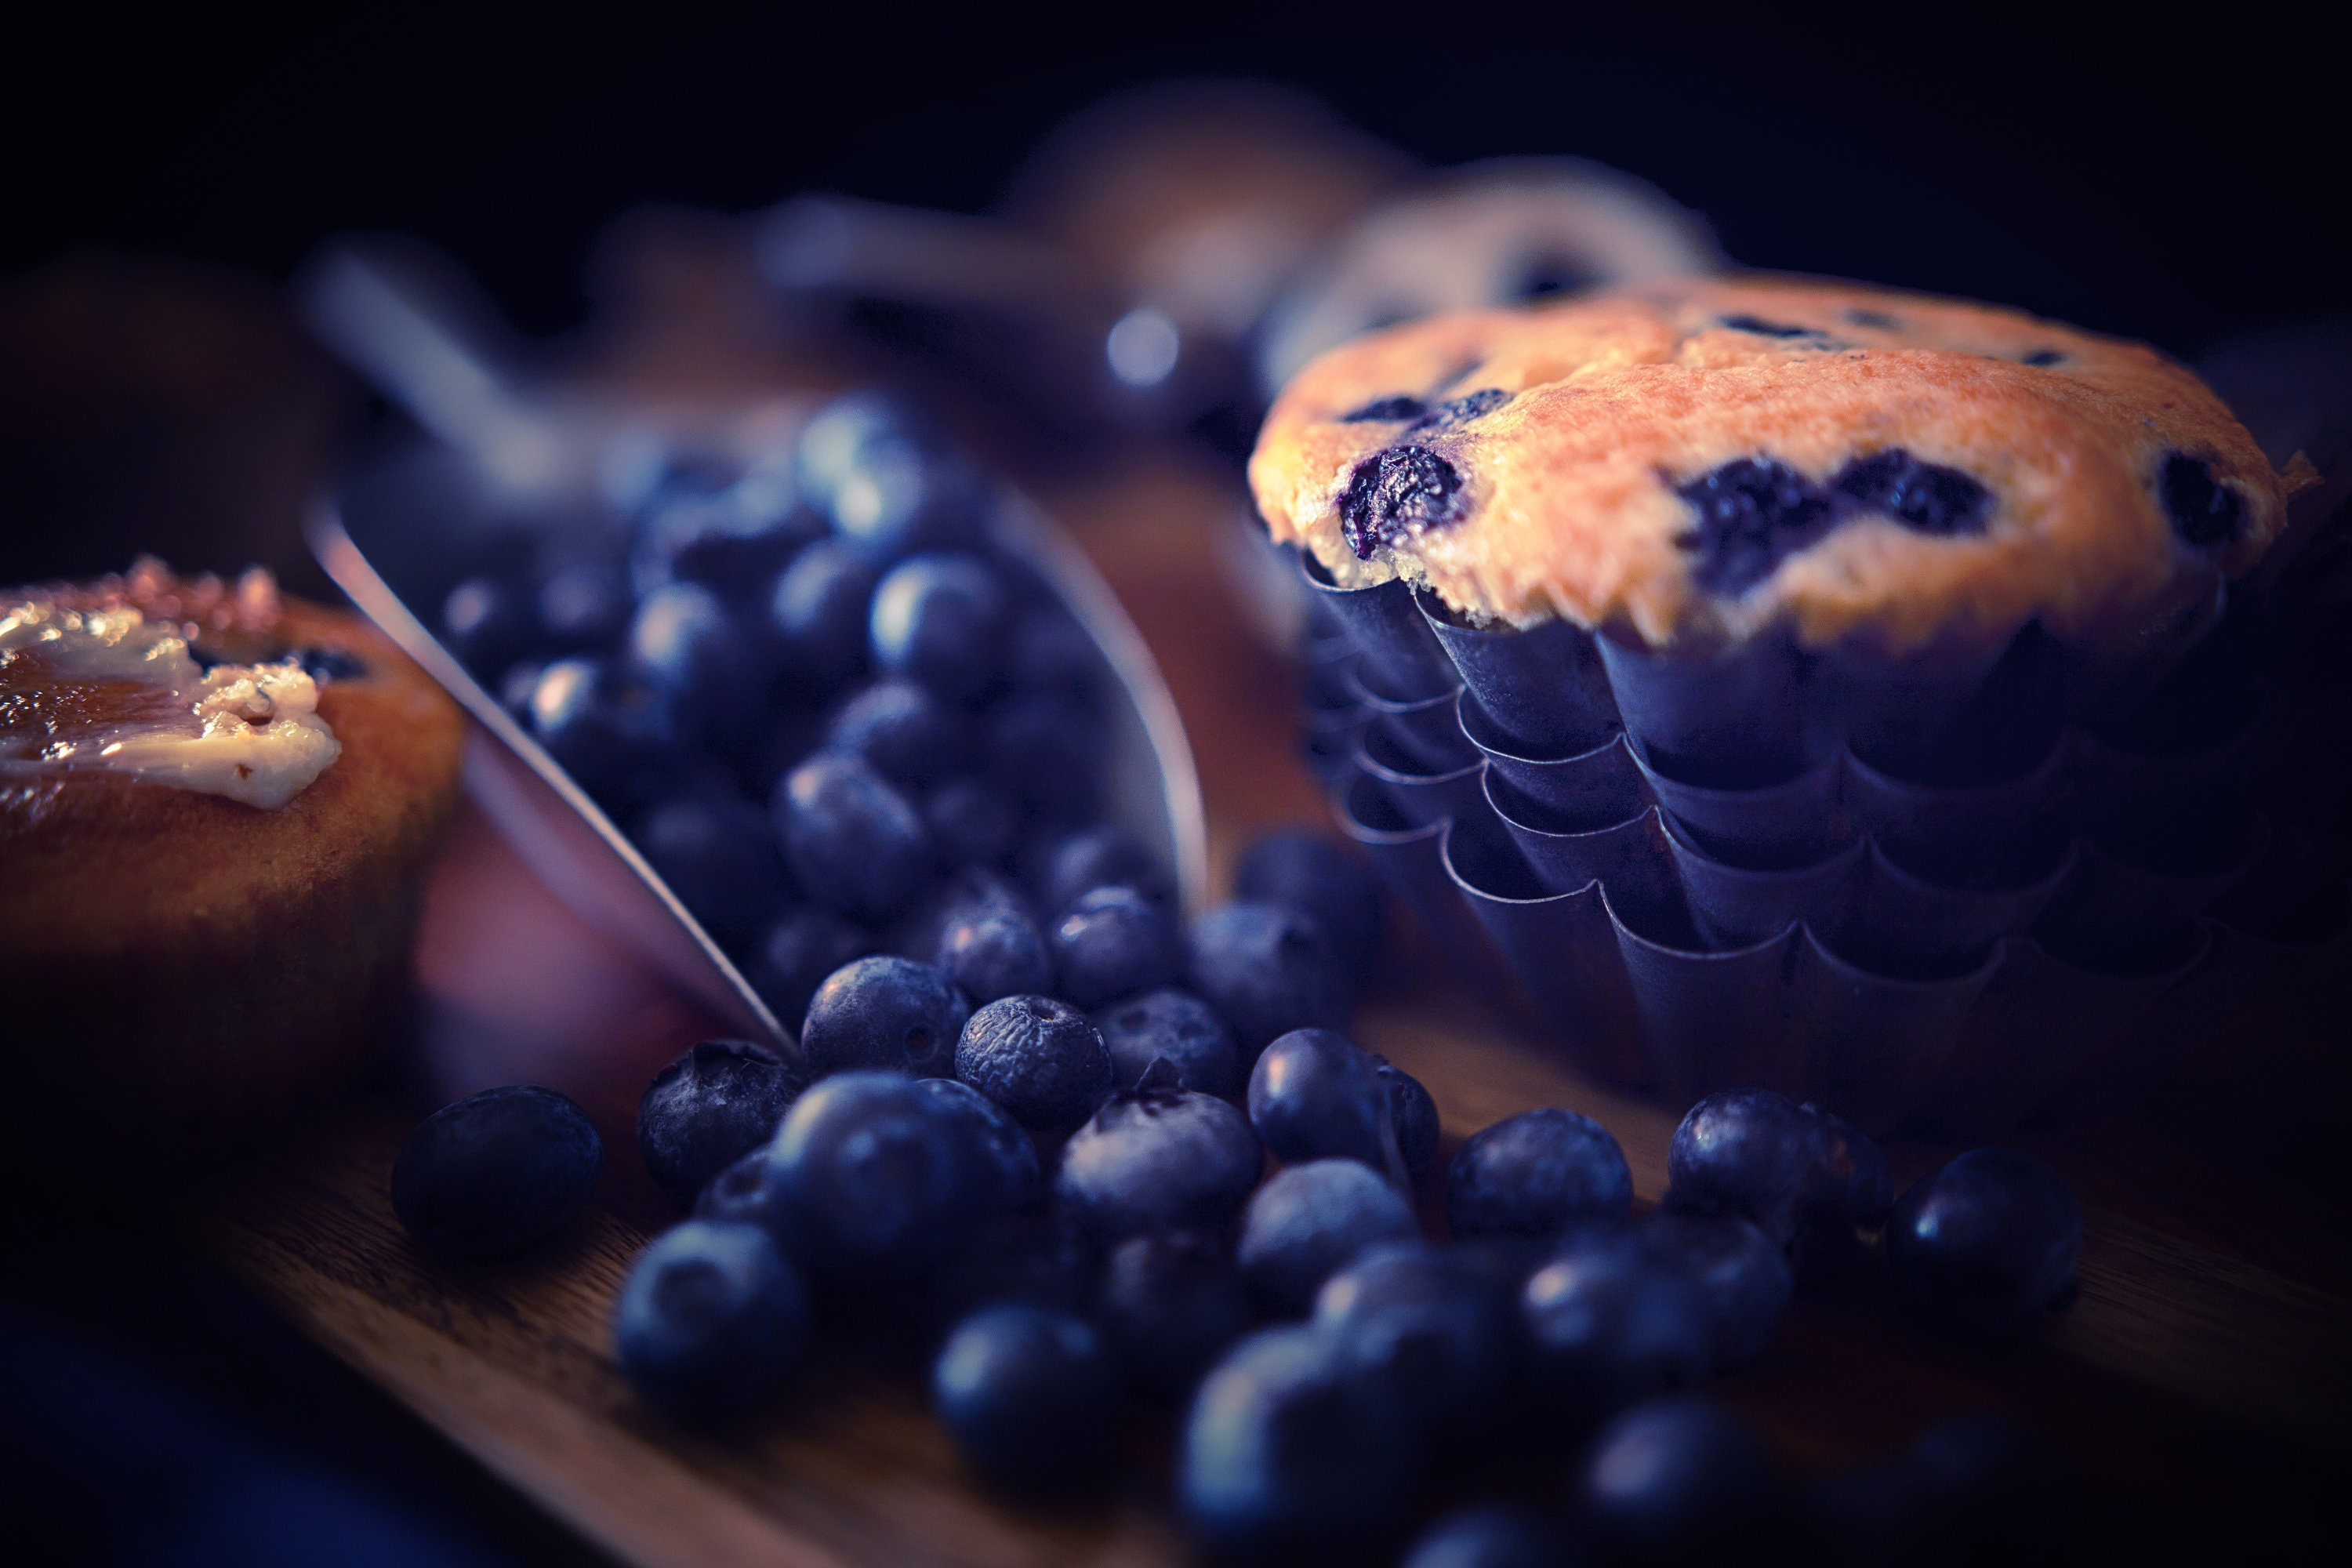 Canvas Dark Food Photography Of Blueberry Muffins And Vintage